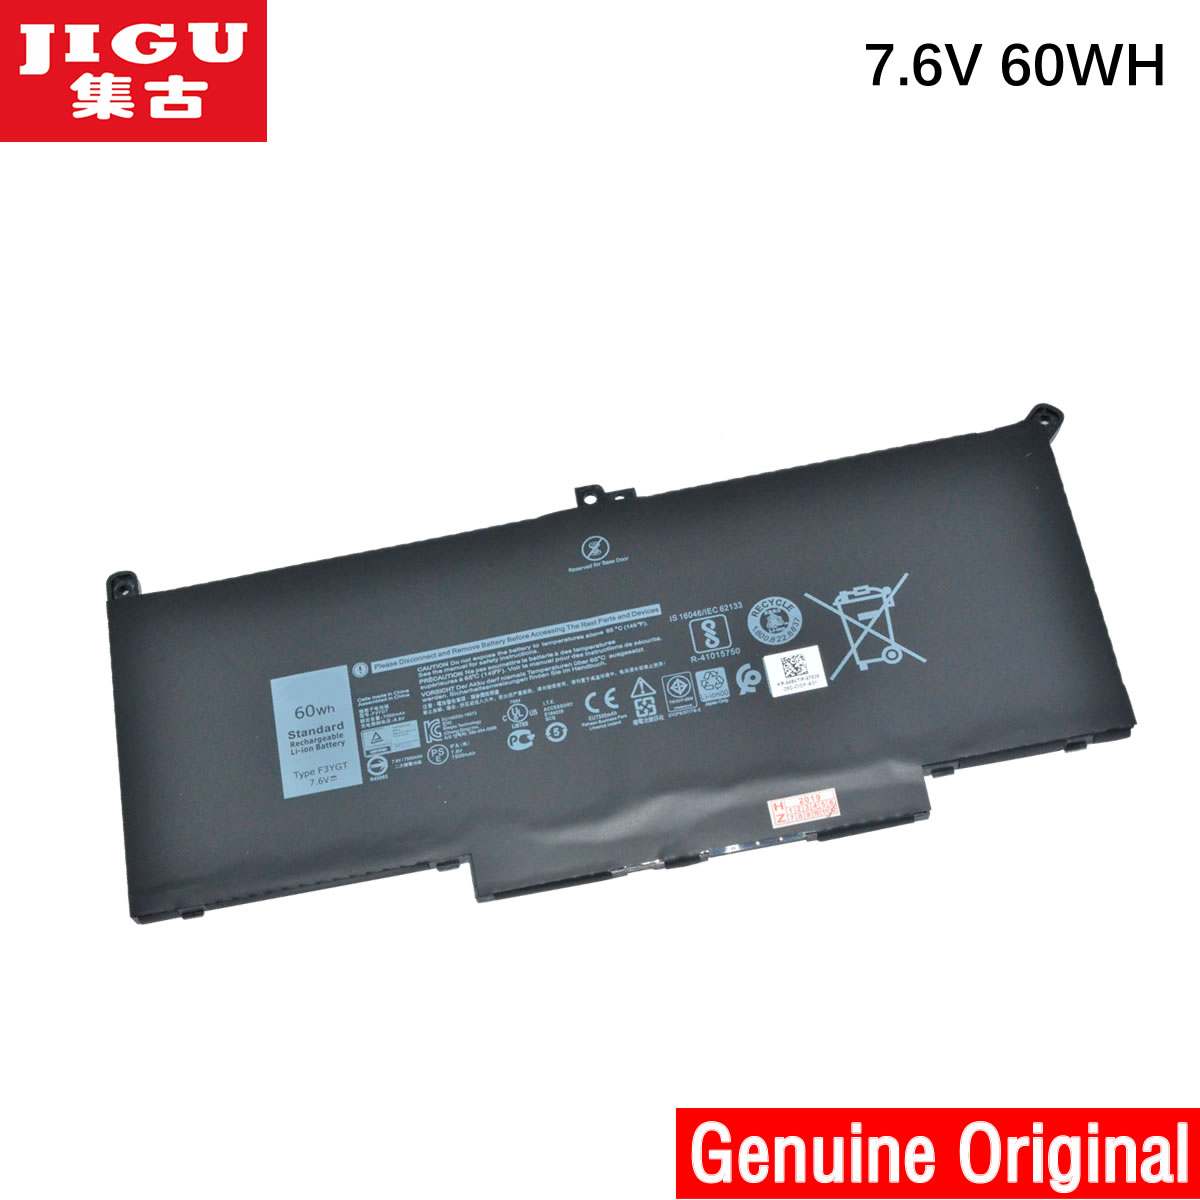 JIGU Original Laptop Battery 2X39G F3YGT For <font><b>DELL</b></font> For Latitude 12 7000 7290 13 7000 7390 7380 <font><b>7490</b></font> image